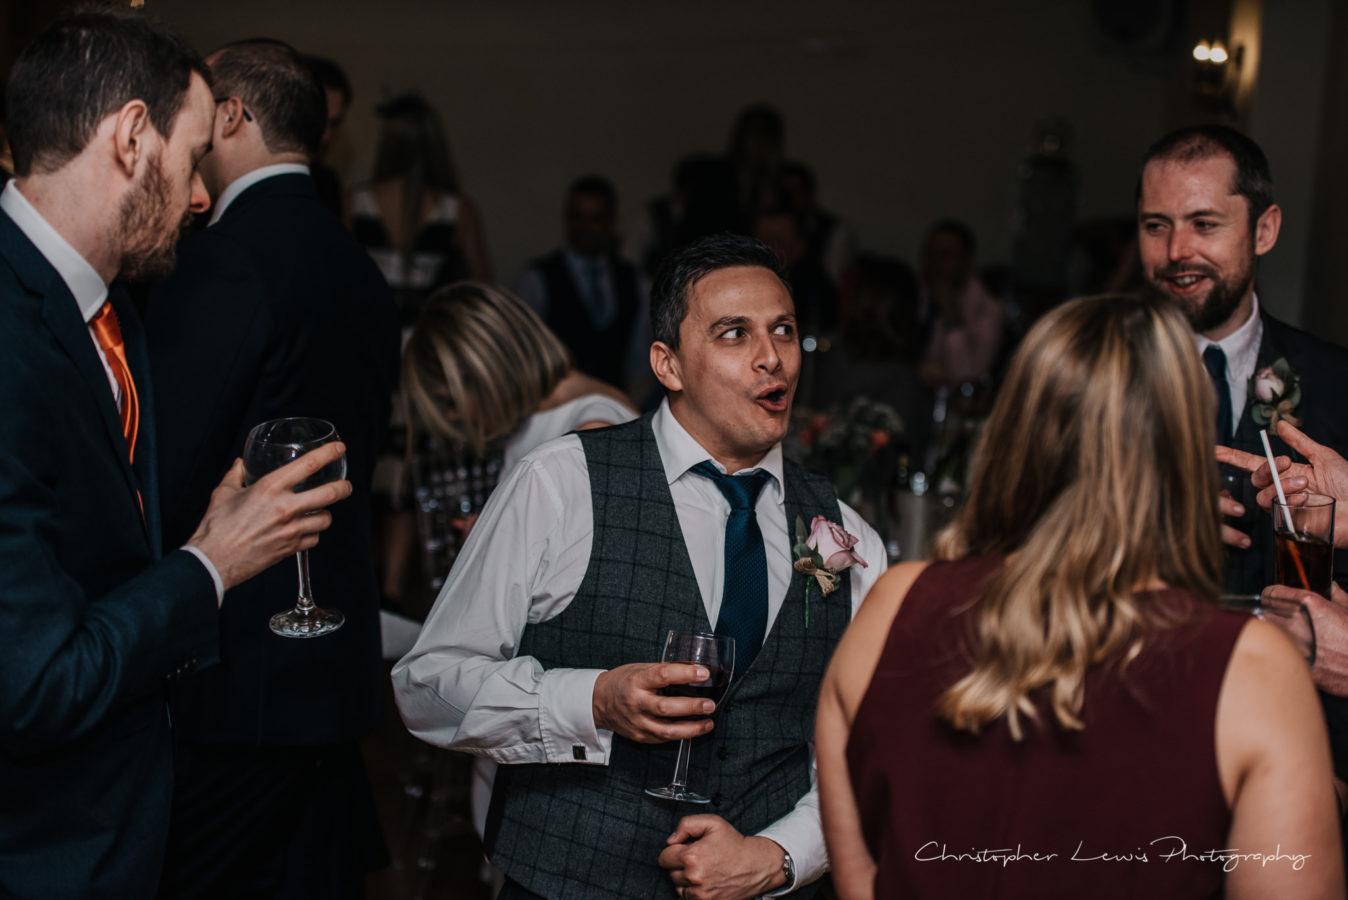 Thief-Hall-Wedding-Christopher-Lewis-Photography-89